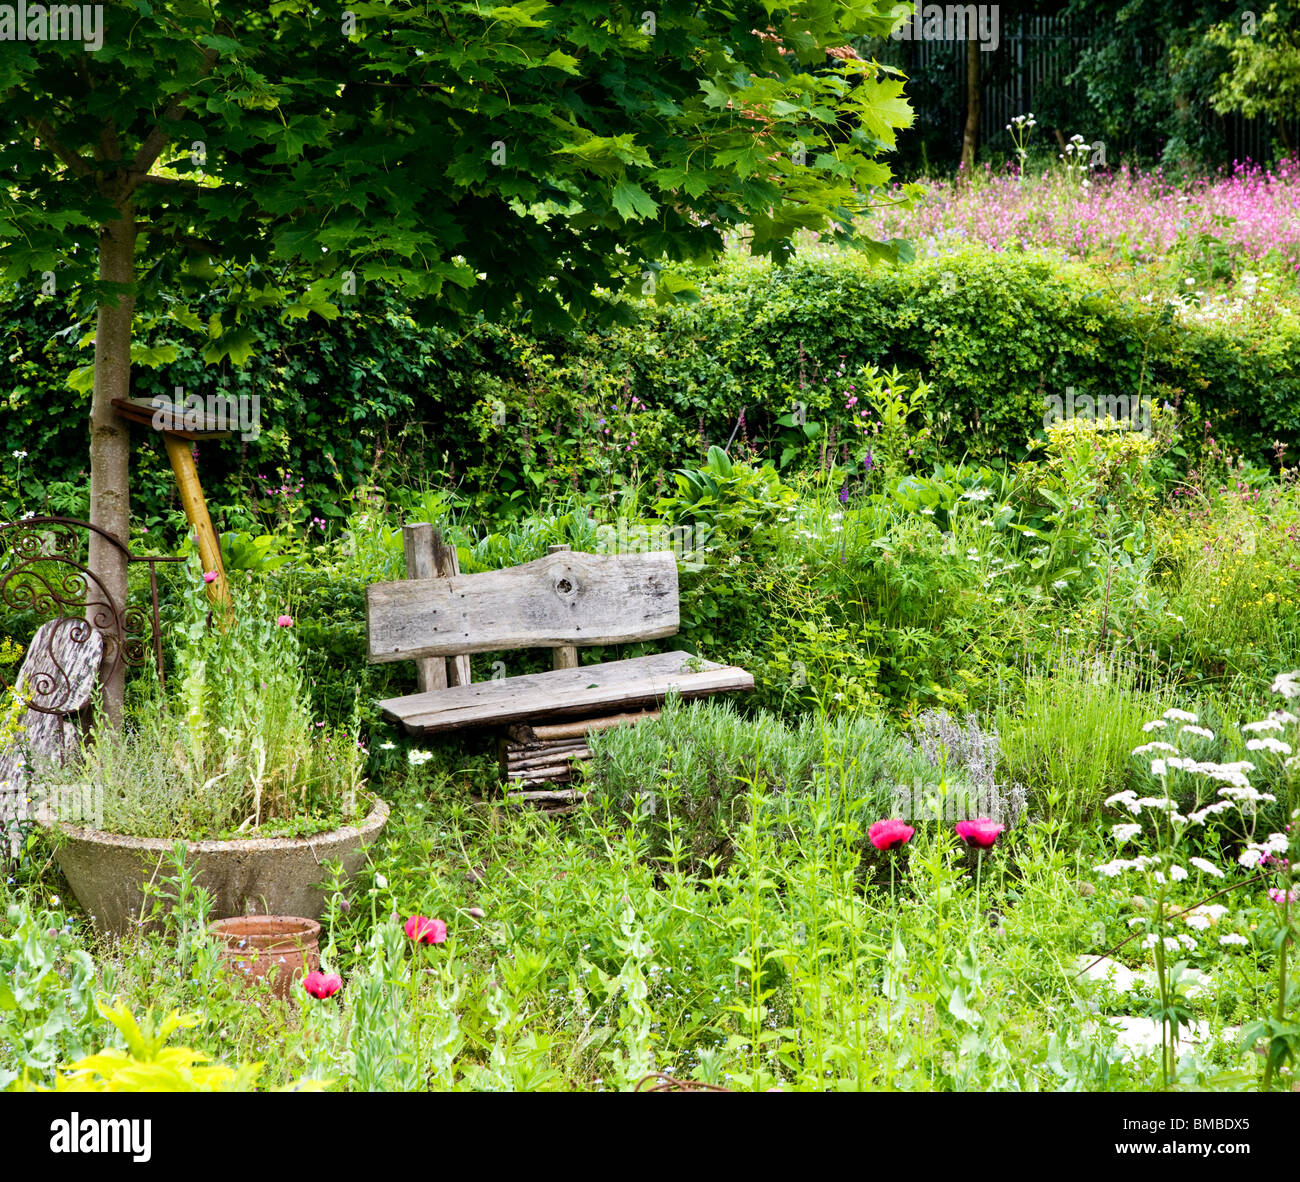 A Charming Rustic Corner Of The Cottage Garden In The